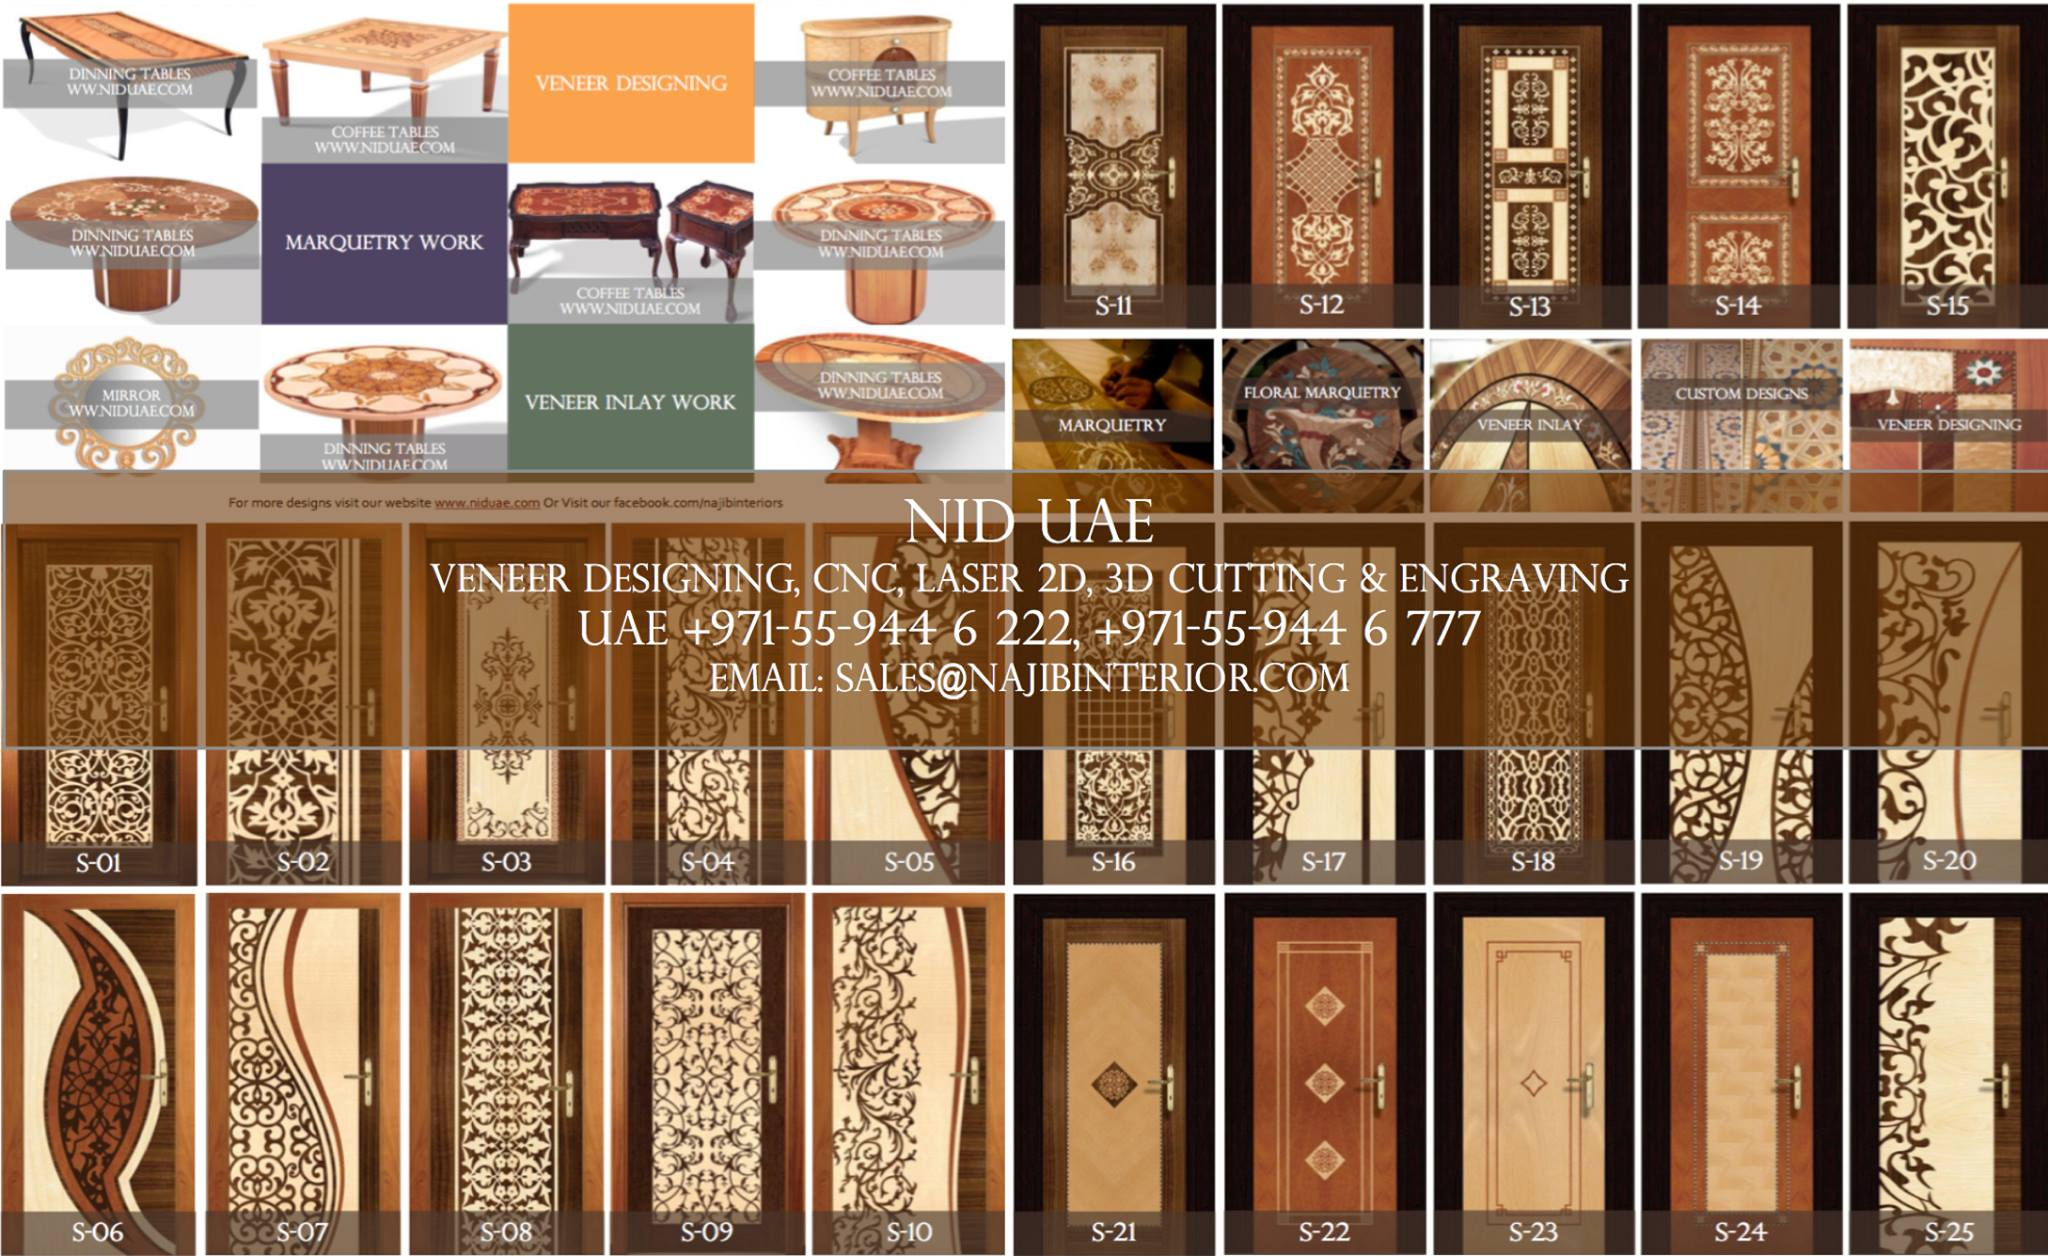 1256 #A75F24 Your Home Your Canvas Best Quality Doors Crafted From Real Wood  picture/photo Best Quality Doors 39592048